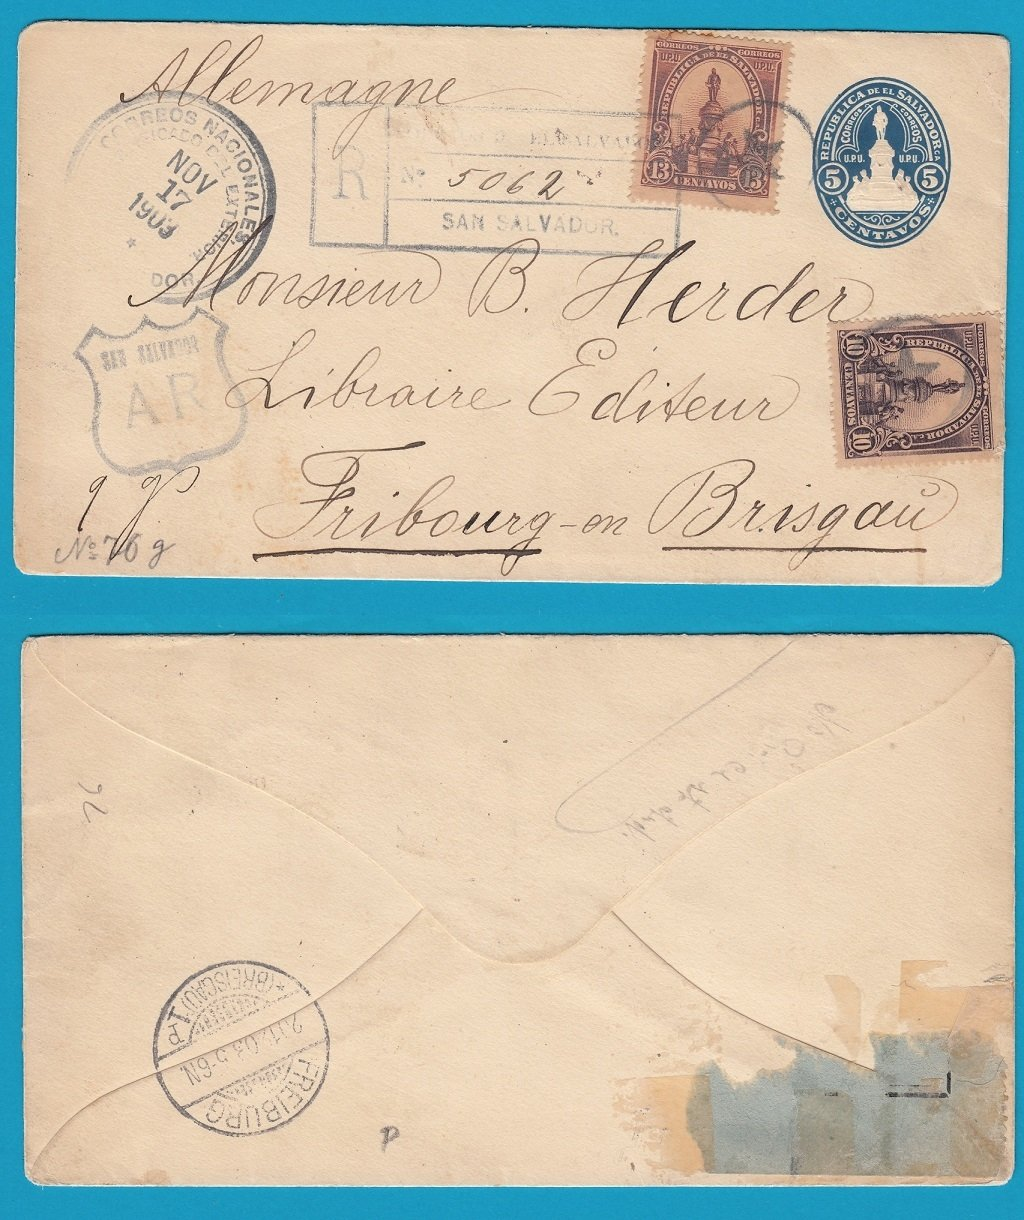 El Salvador postal envelope with AR 1903 San Salvador to Germany